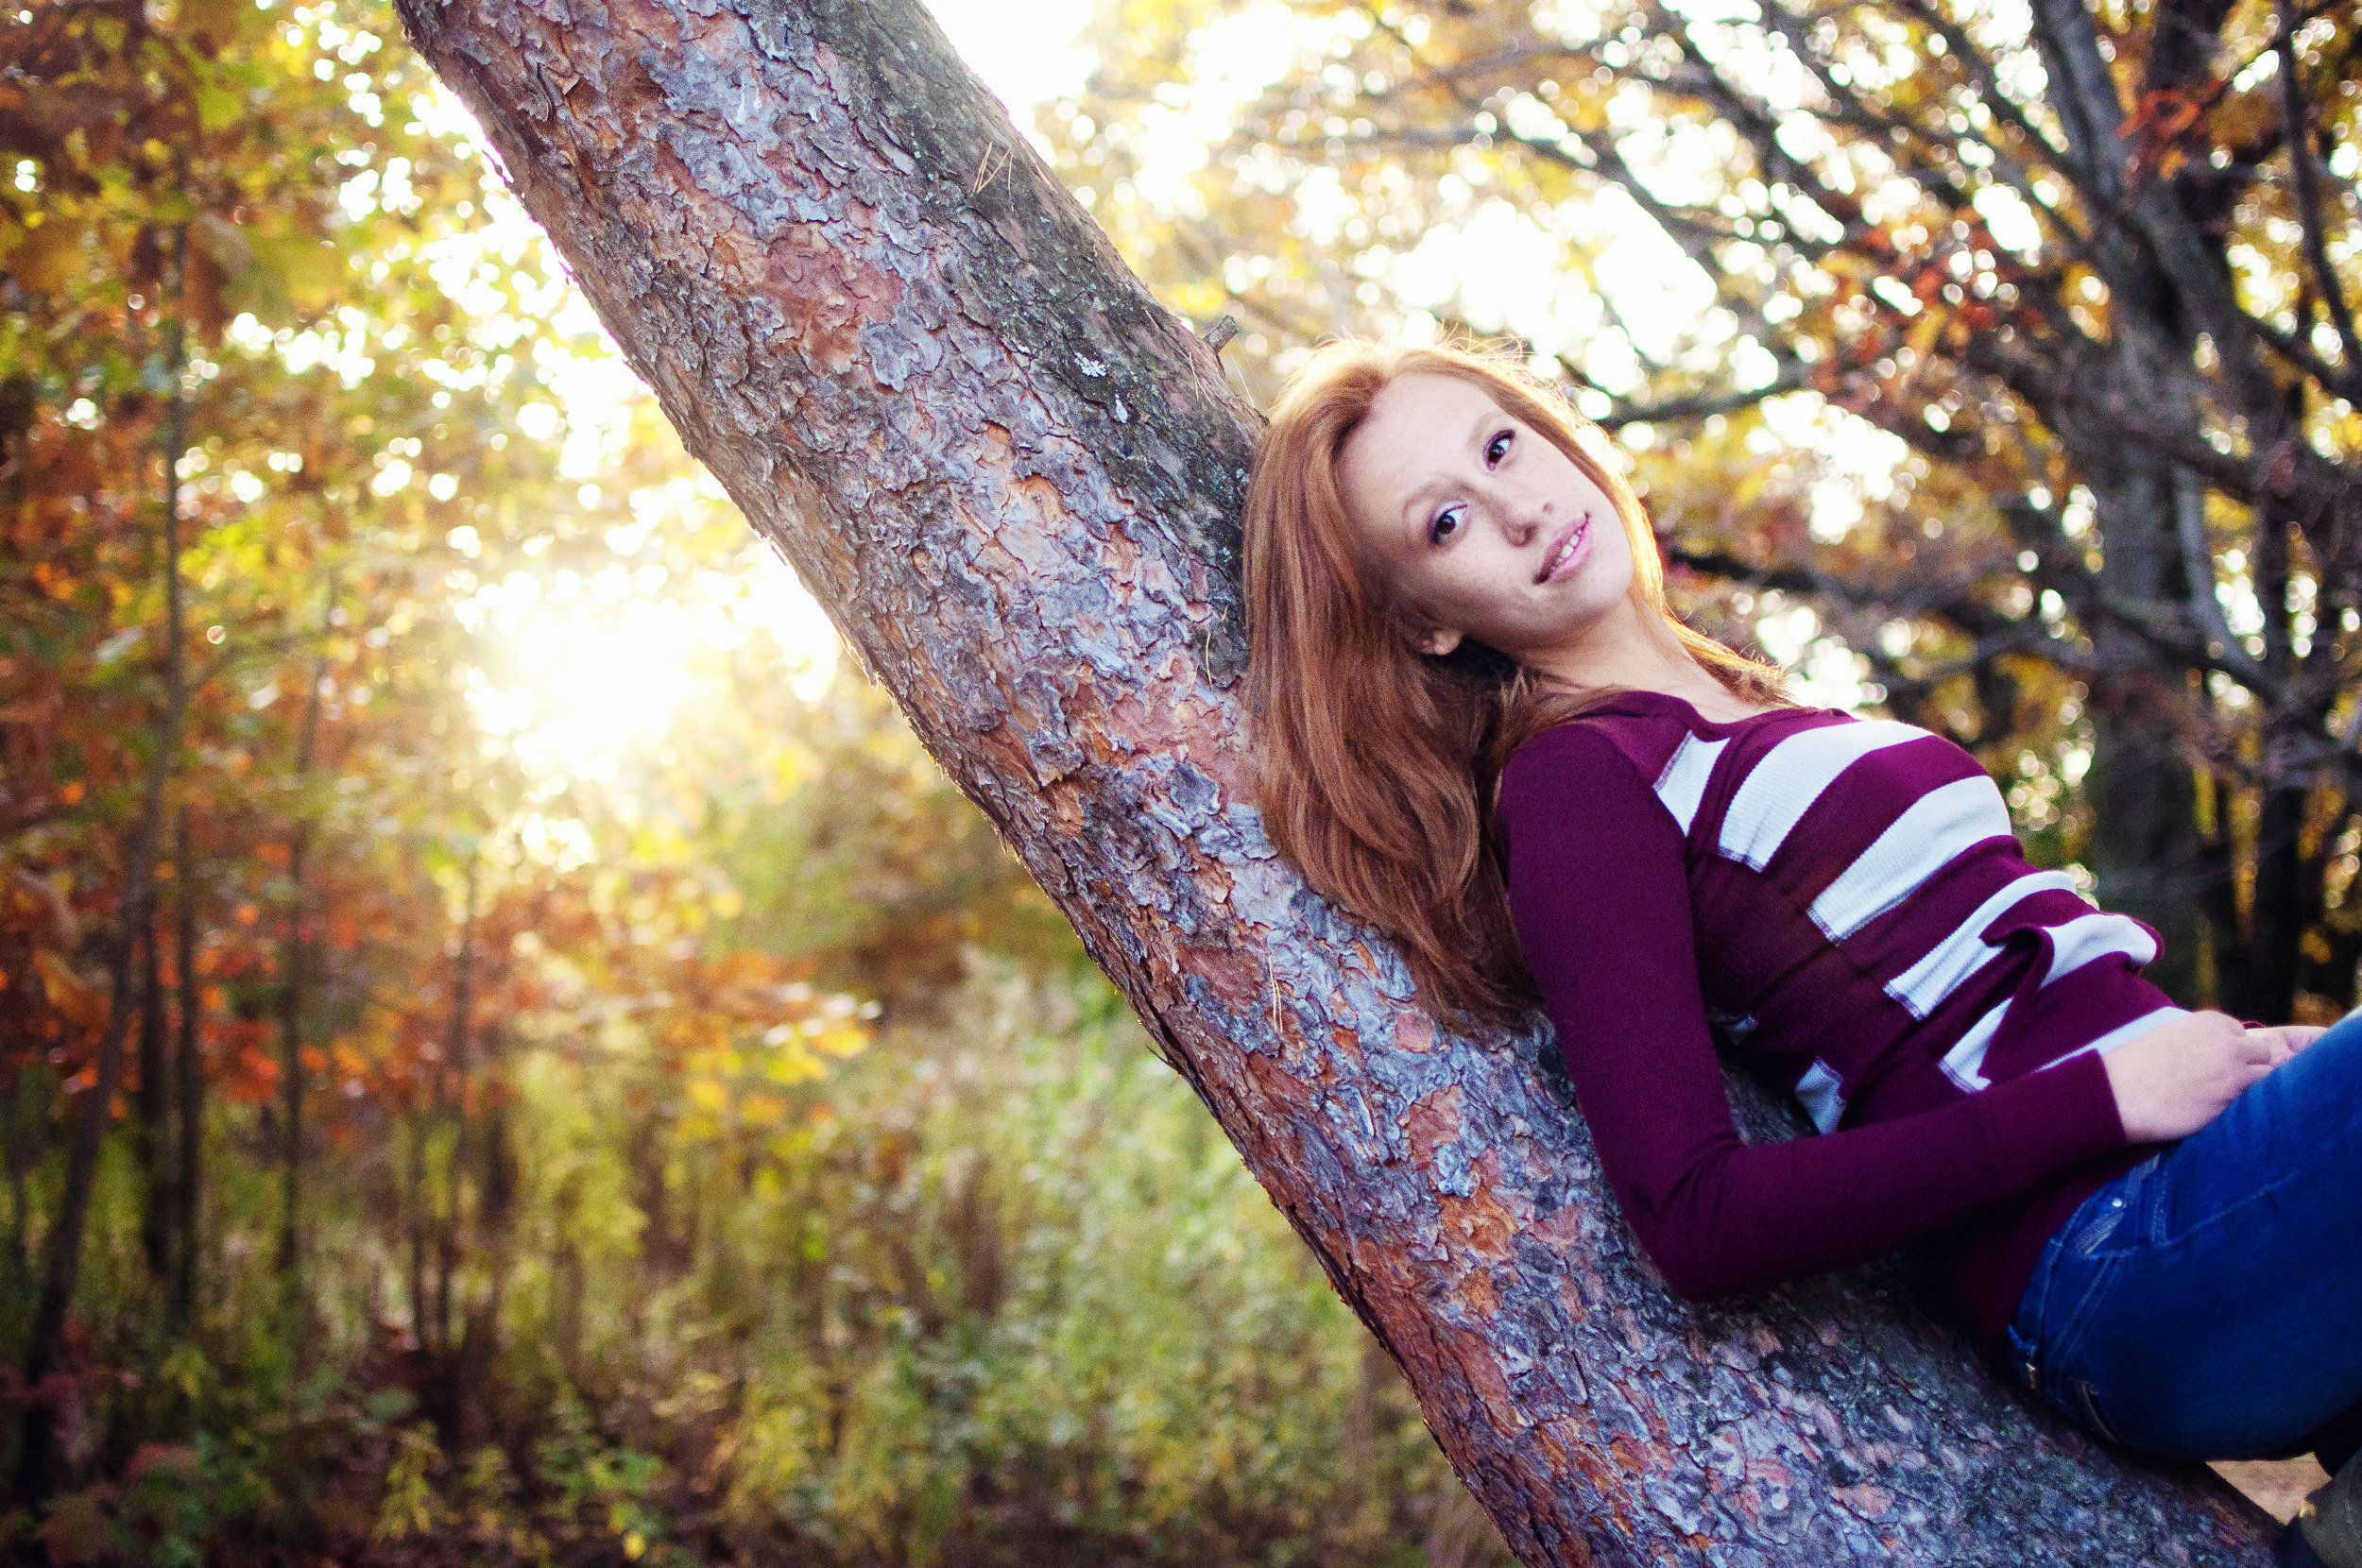 redhead high school senior model in tree during the fall or autumn